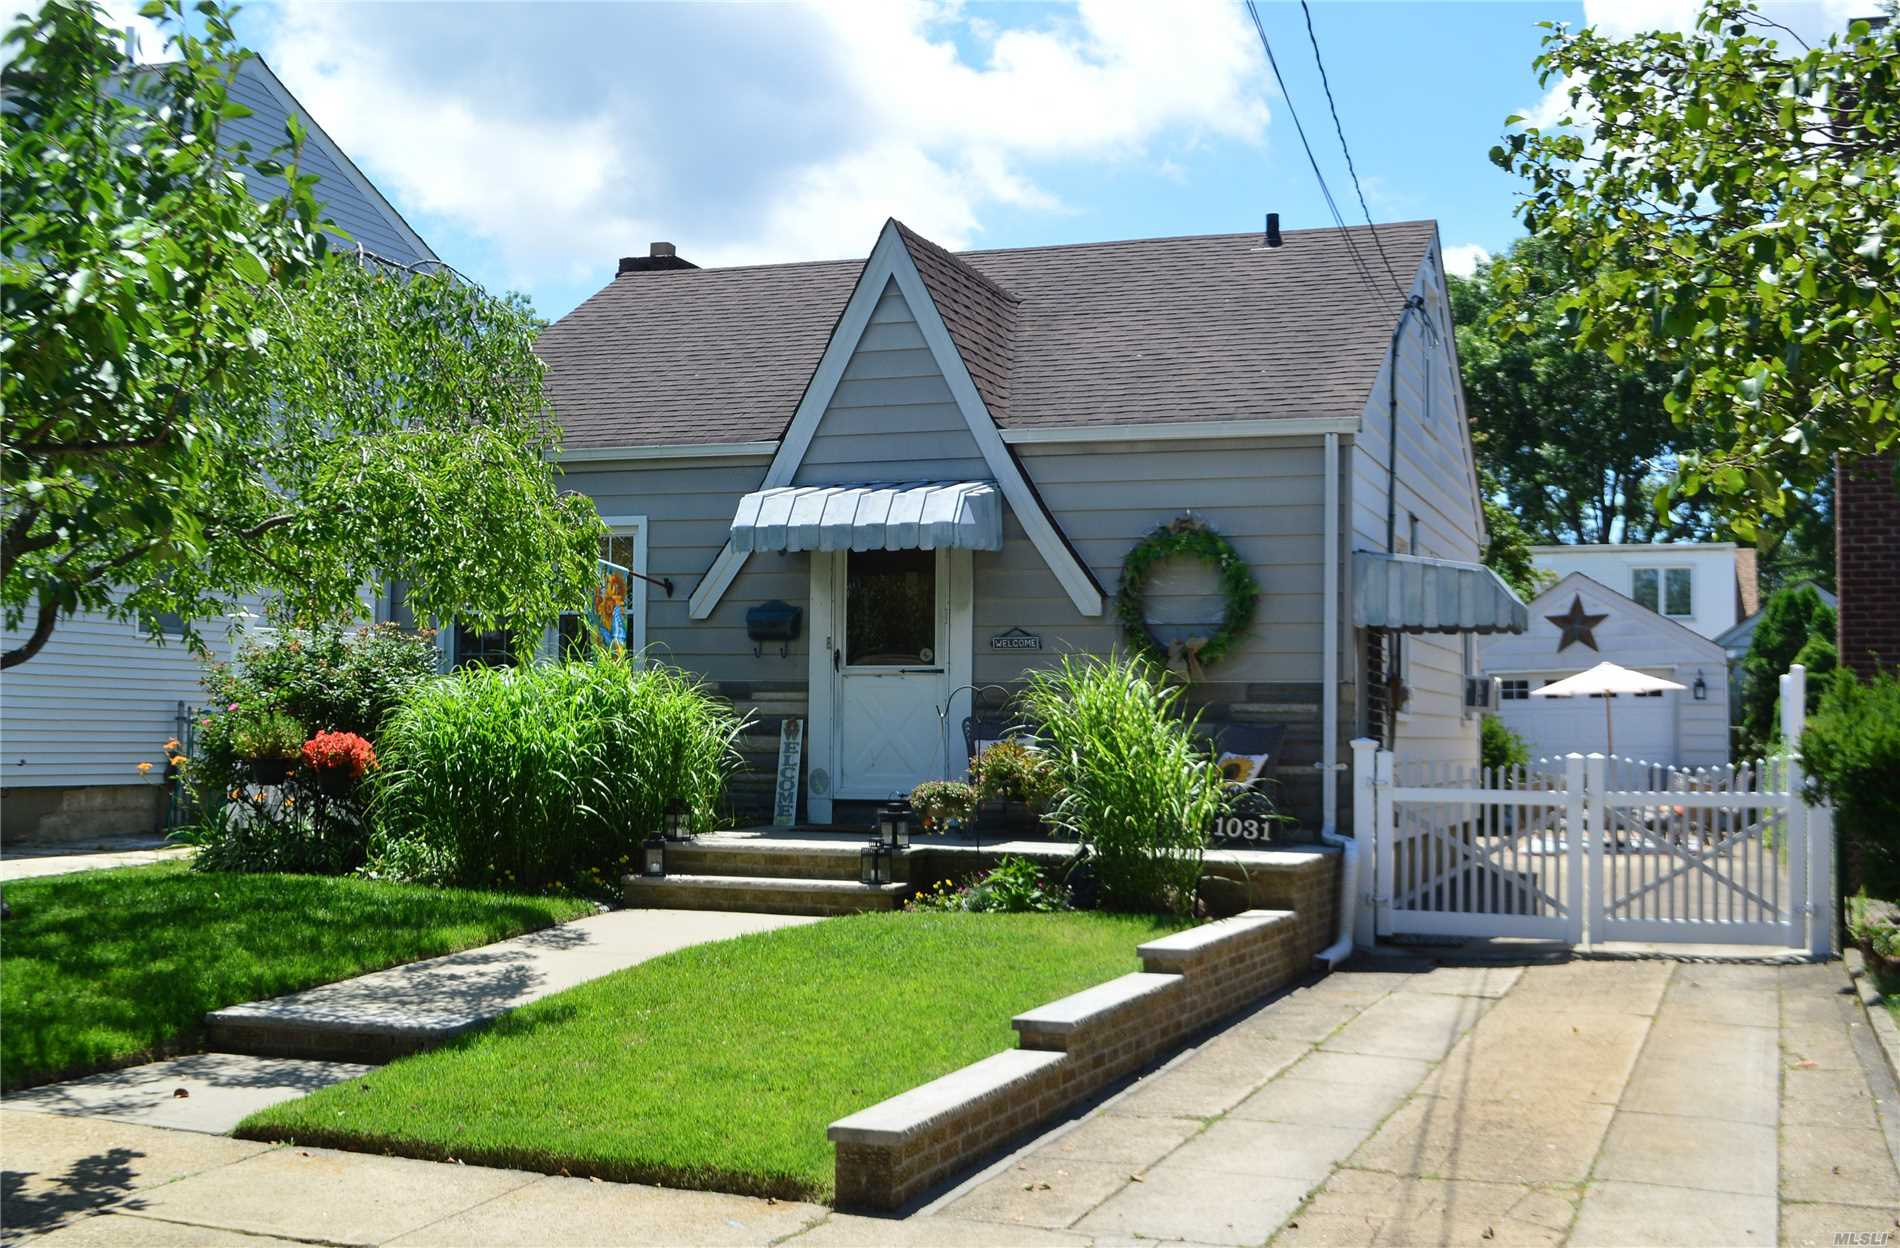 Lovely 2 Br Cape Featuring Living Room, Eat-In Kitchen, Formal Dining Room, New Bath, Office W/Ose, Walk-Up Loft/Attic, Full Basement W/Ose, Hw Floors, Front Porch, Back Patio W/Awning, Det 1.5 Car Garage.Taxes Currently $11, 467.17, And Are Being Prof. Grieved. Expected Reduction Approx 2500-2800!New Dryer, Newer Washer, Arch. Roof 2003, Vinyl Replacement Windows 2005, Garage Door 2015, Fence 2016. Transferable Terminex Contract, Heating Service Contract W/Slomins, Lawn Service Paid Through Oct.